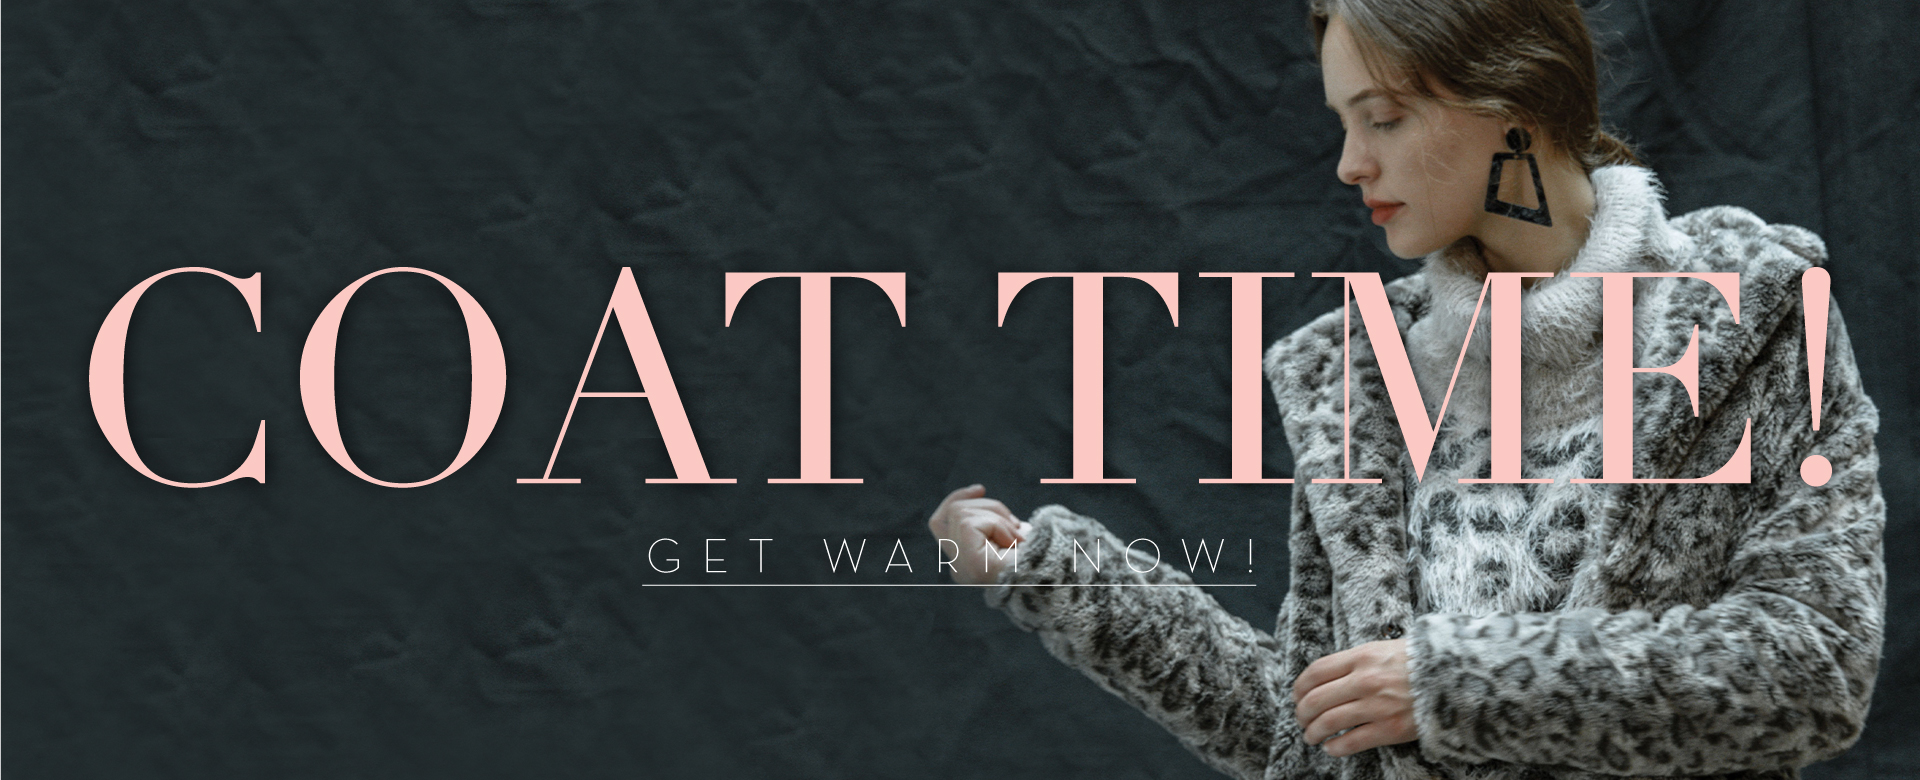 Coat-time-banner-EN-1920x780px